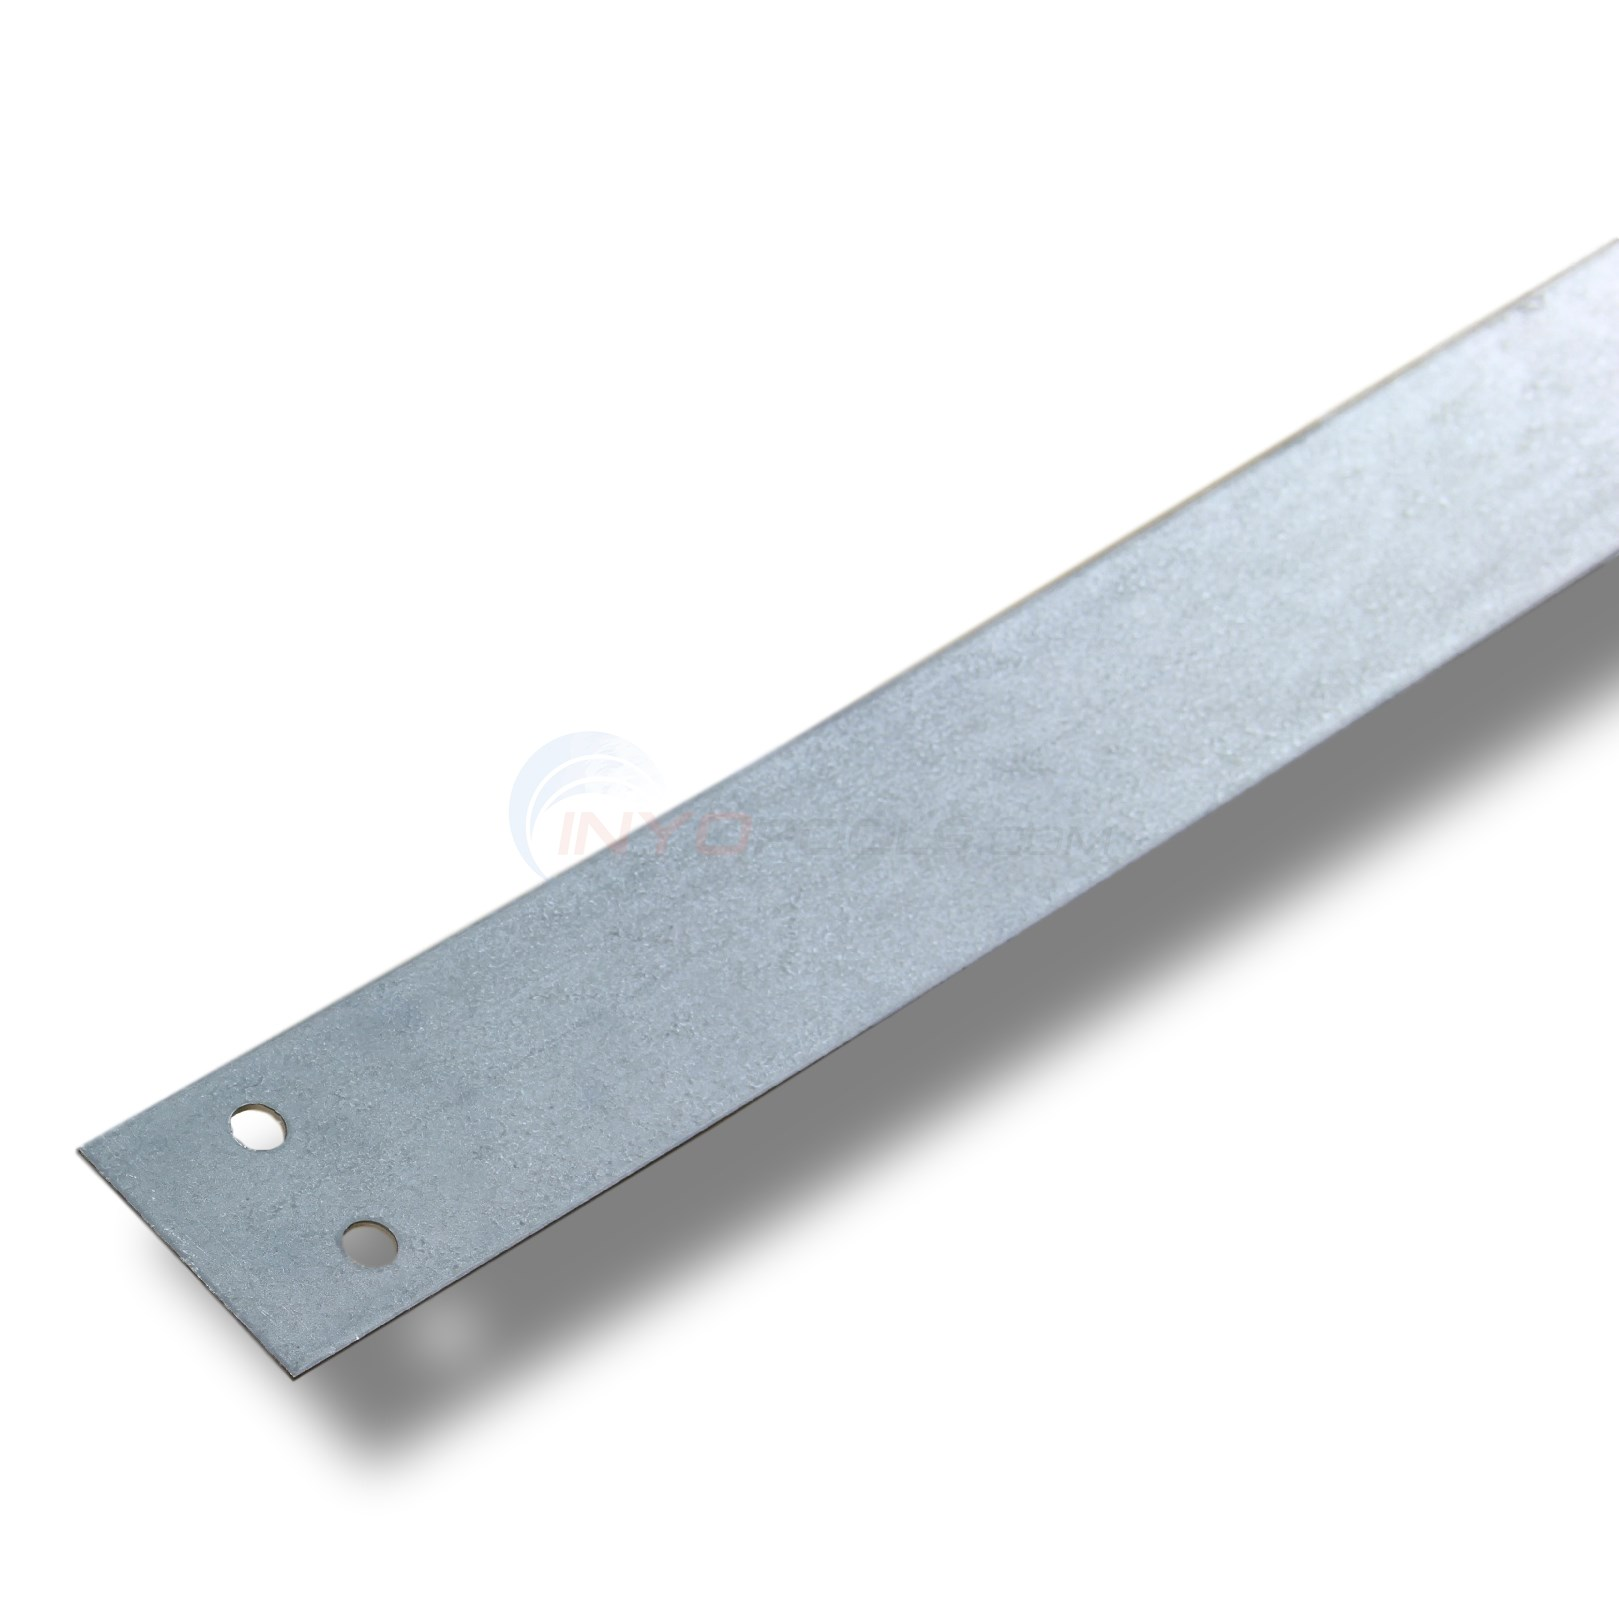 "Wilbar Strap Section 52-11/16"" (Single) - 16726"